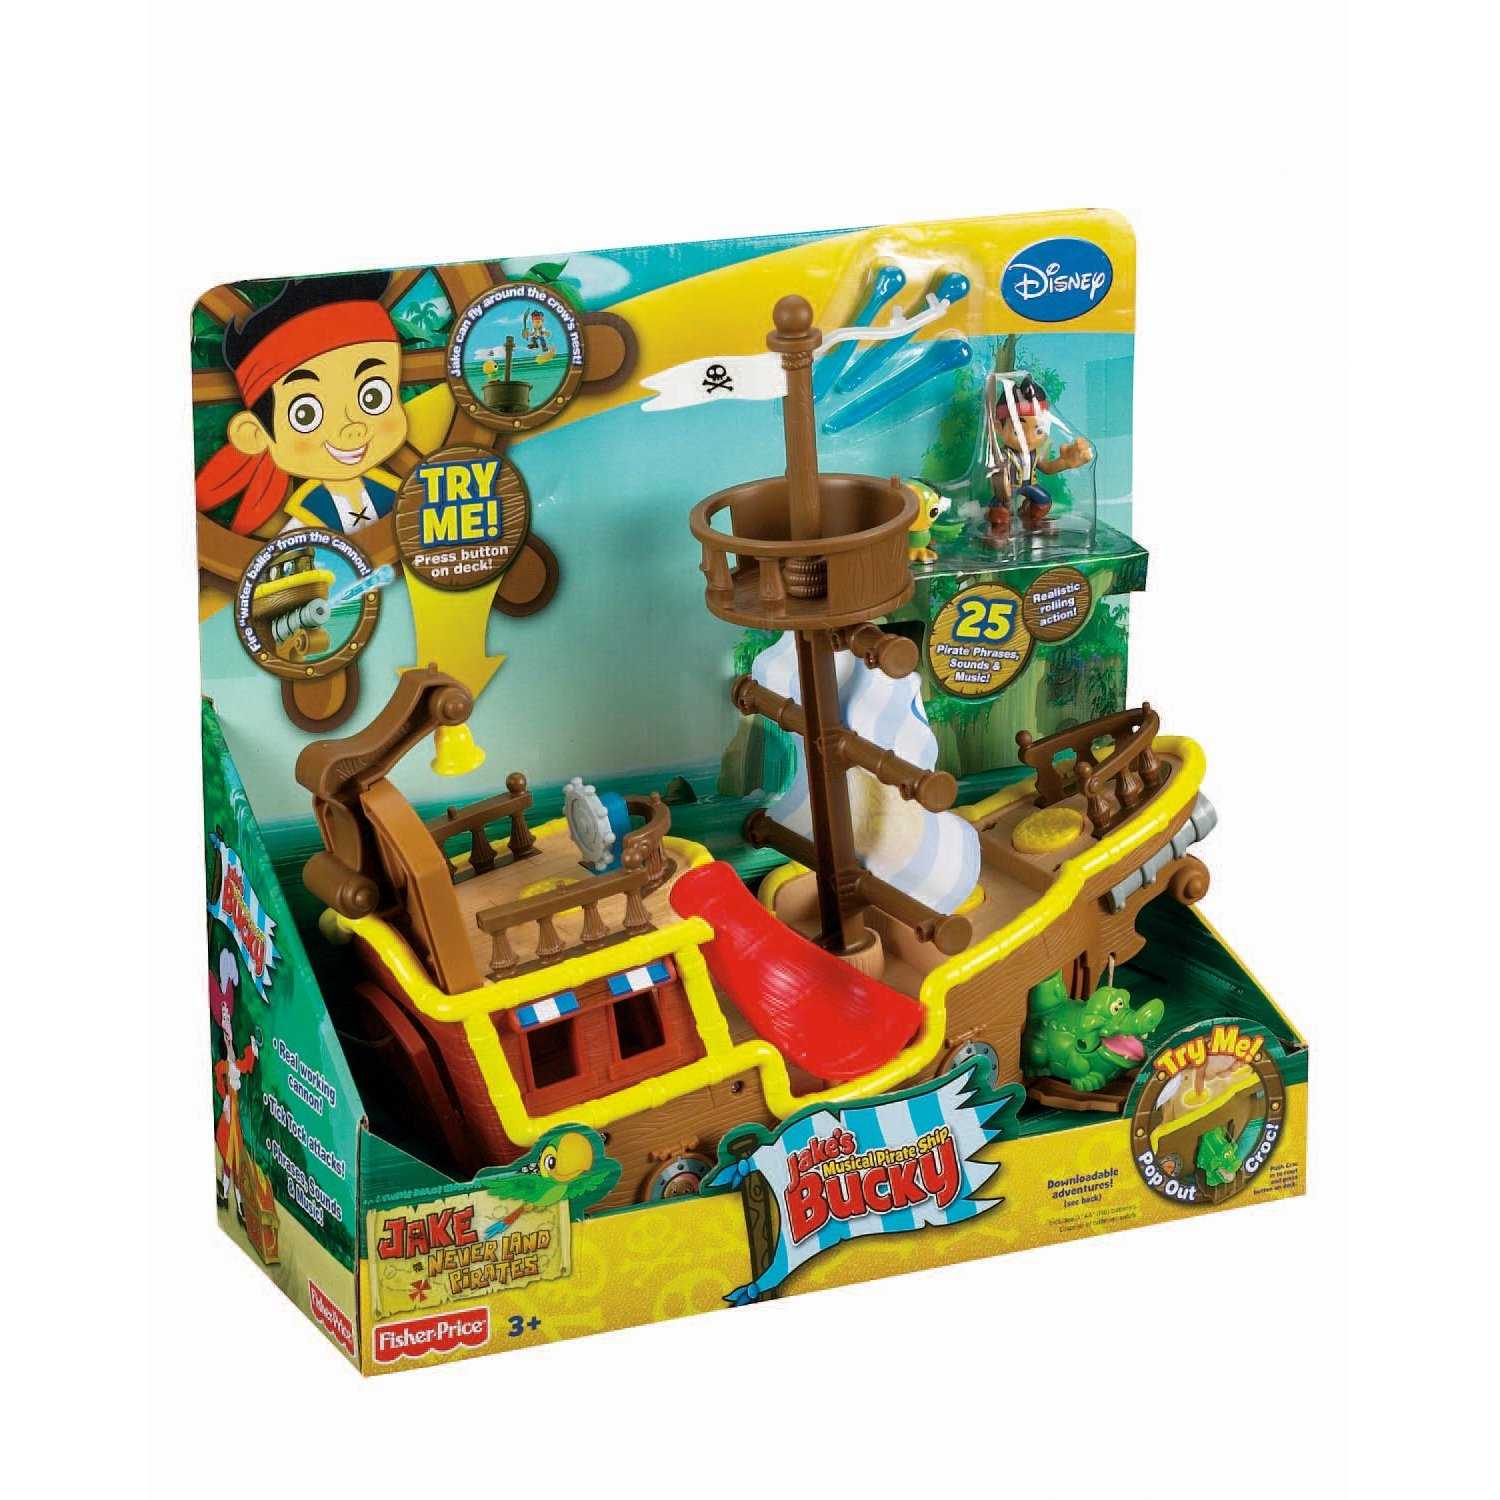 Peter Pan Pirate Ship Toy The Pirate Ship is From Peter